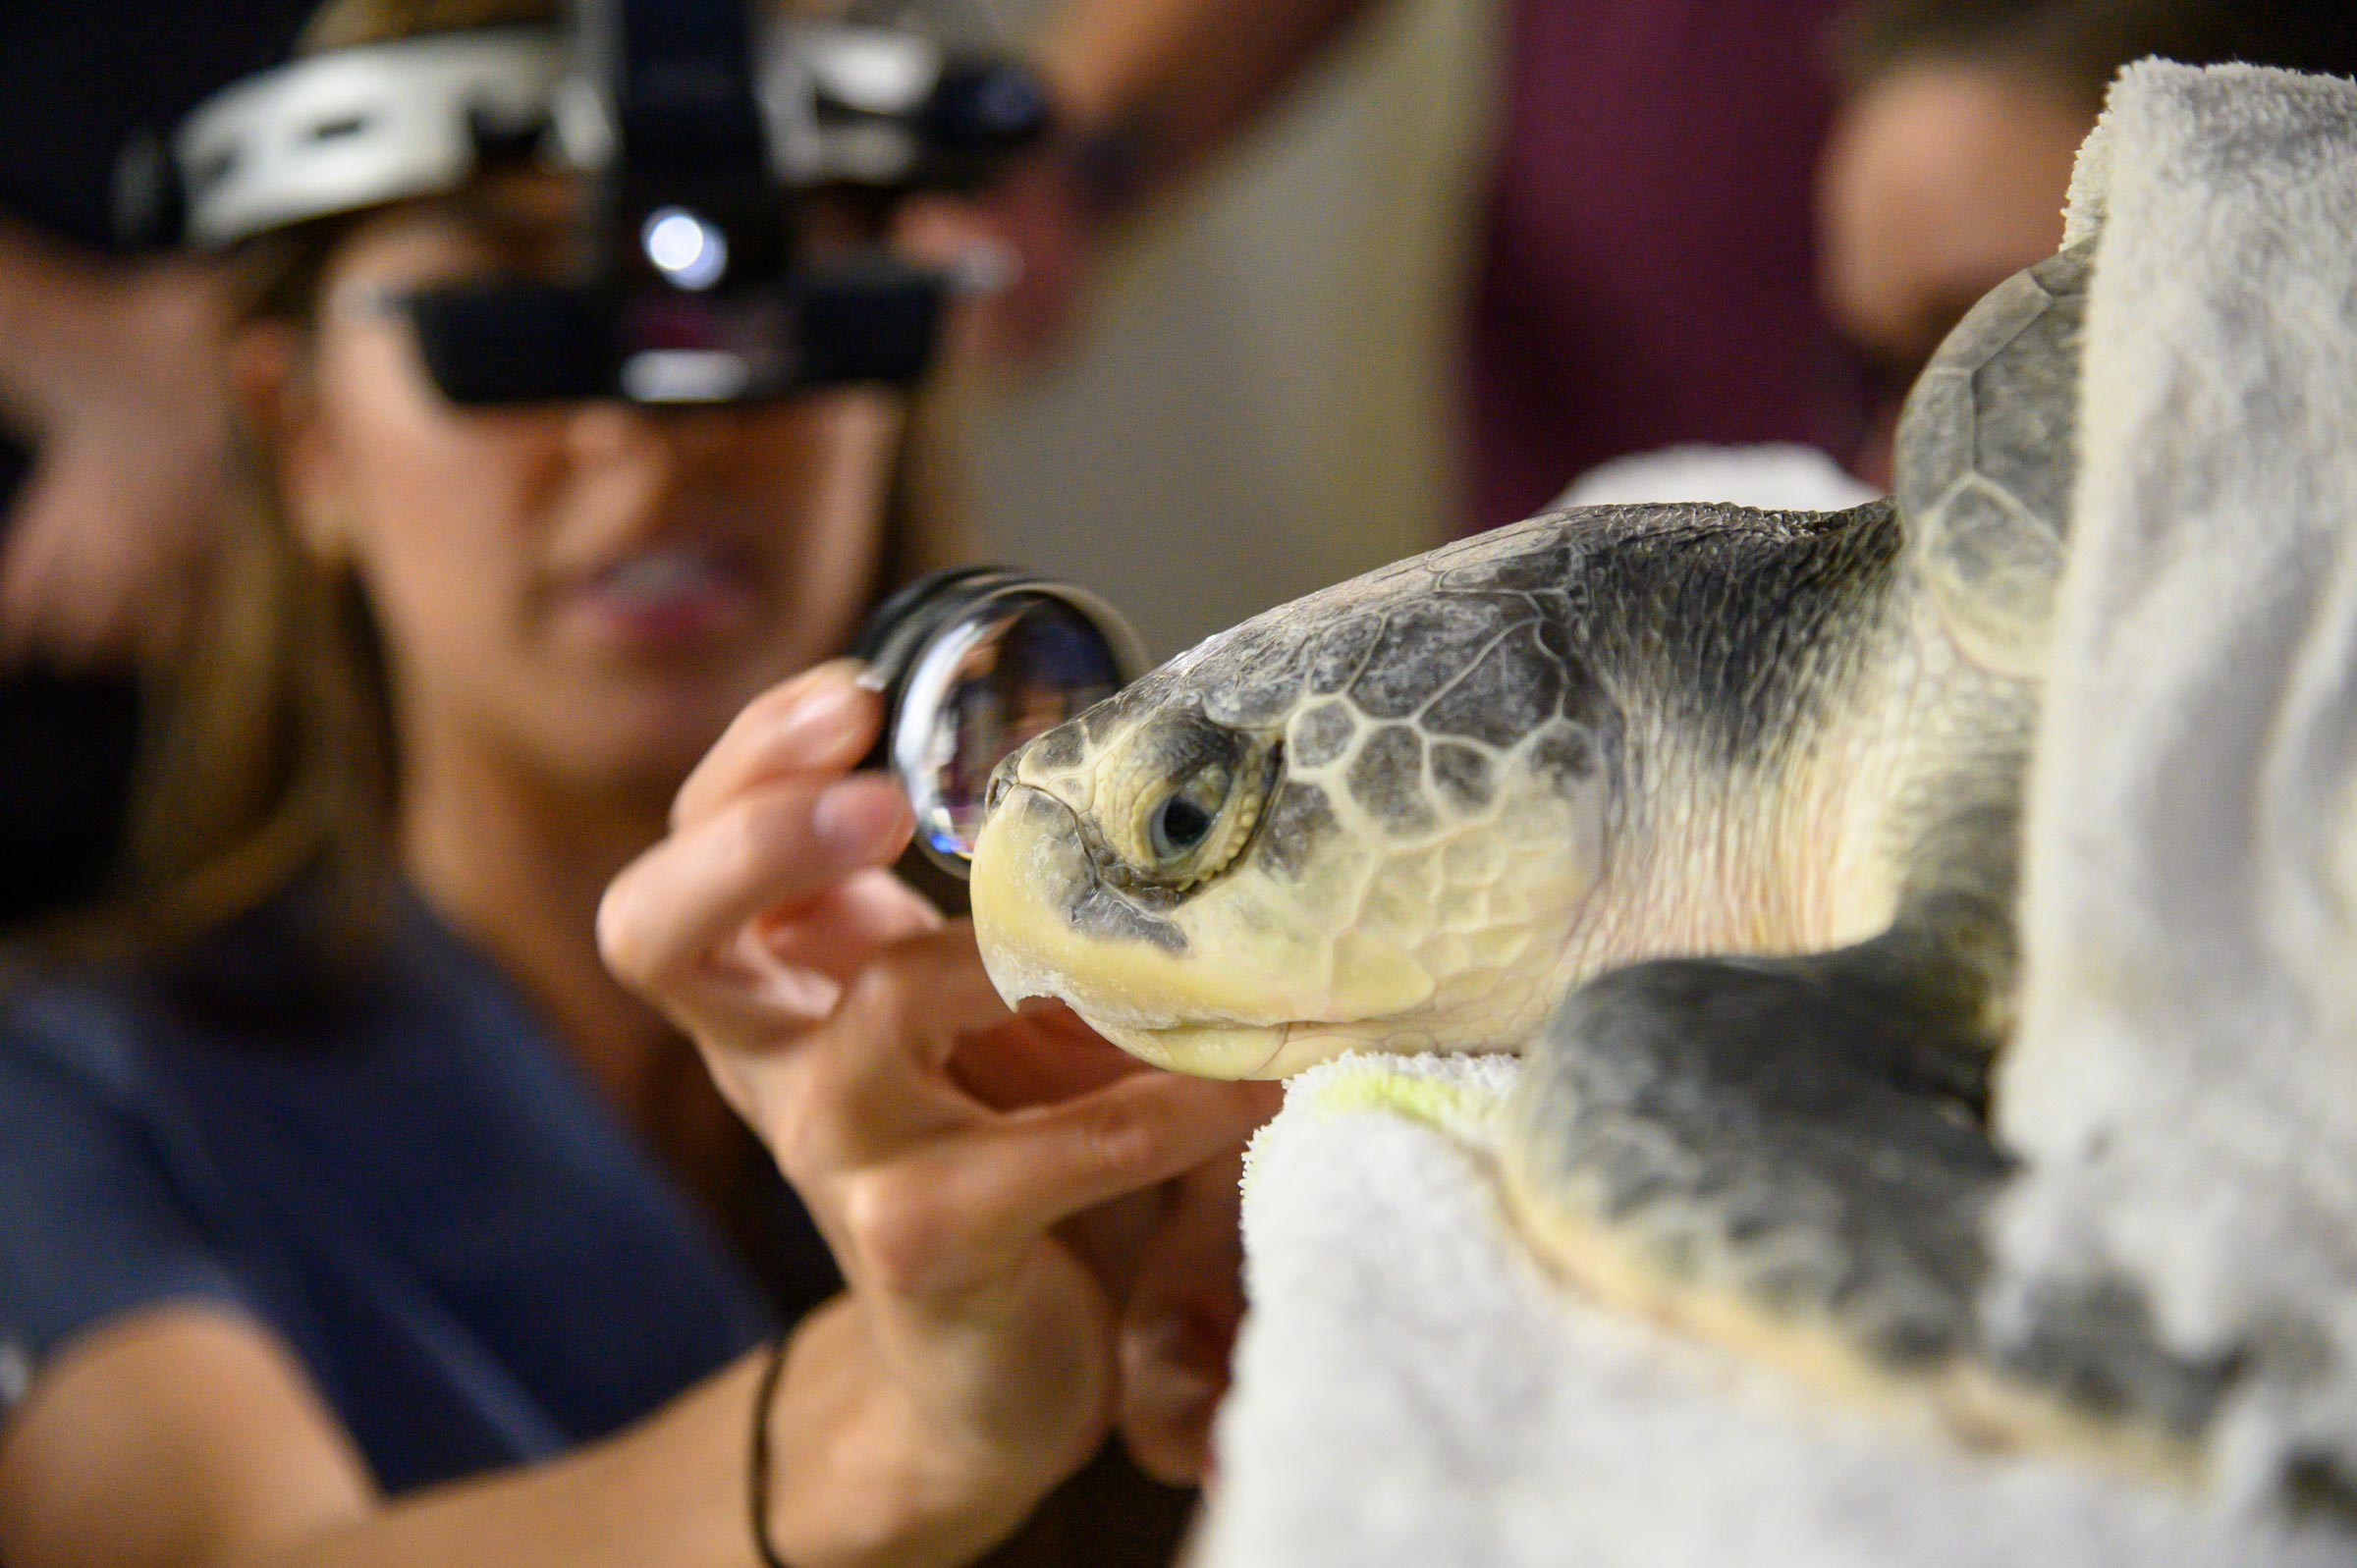 A Ridley Sea Turtle is examined by an Ophthalmology Resident.